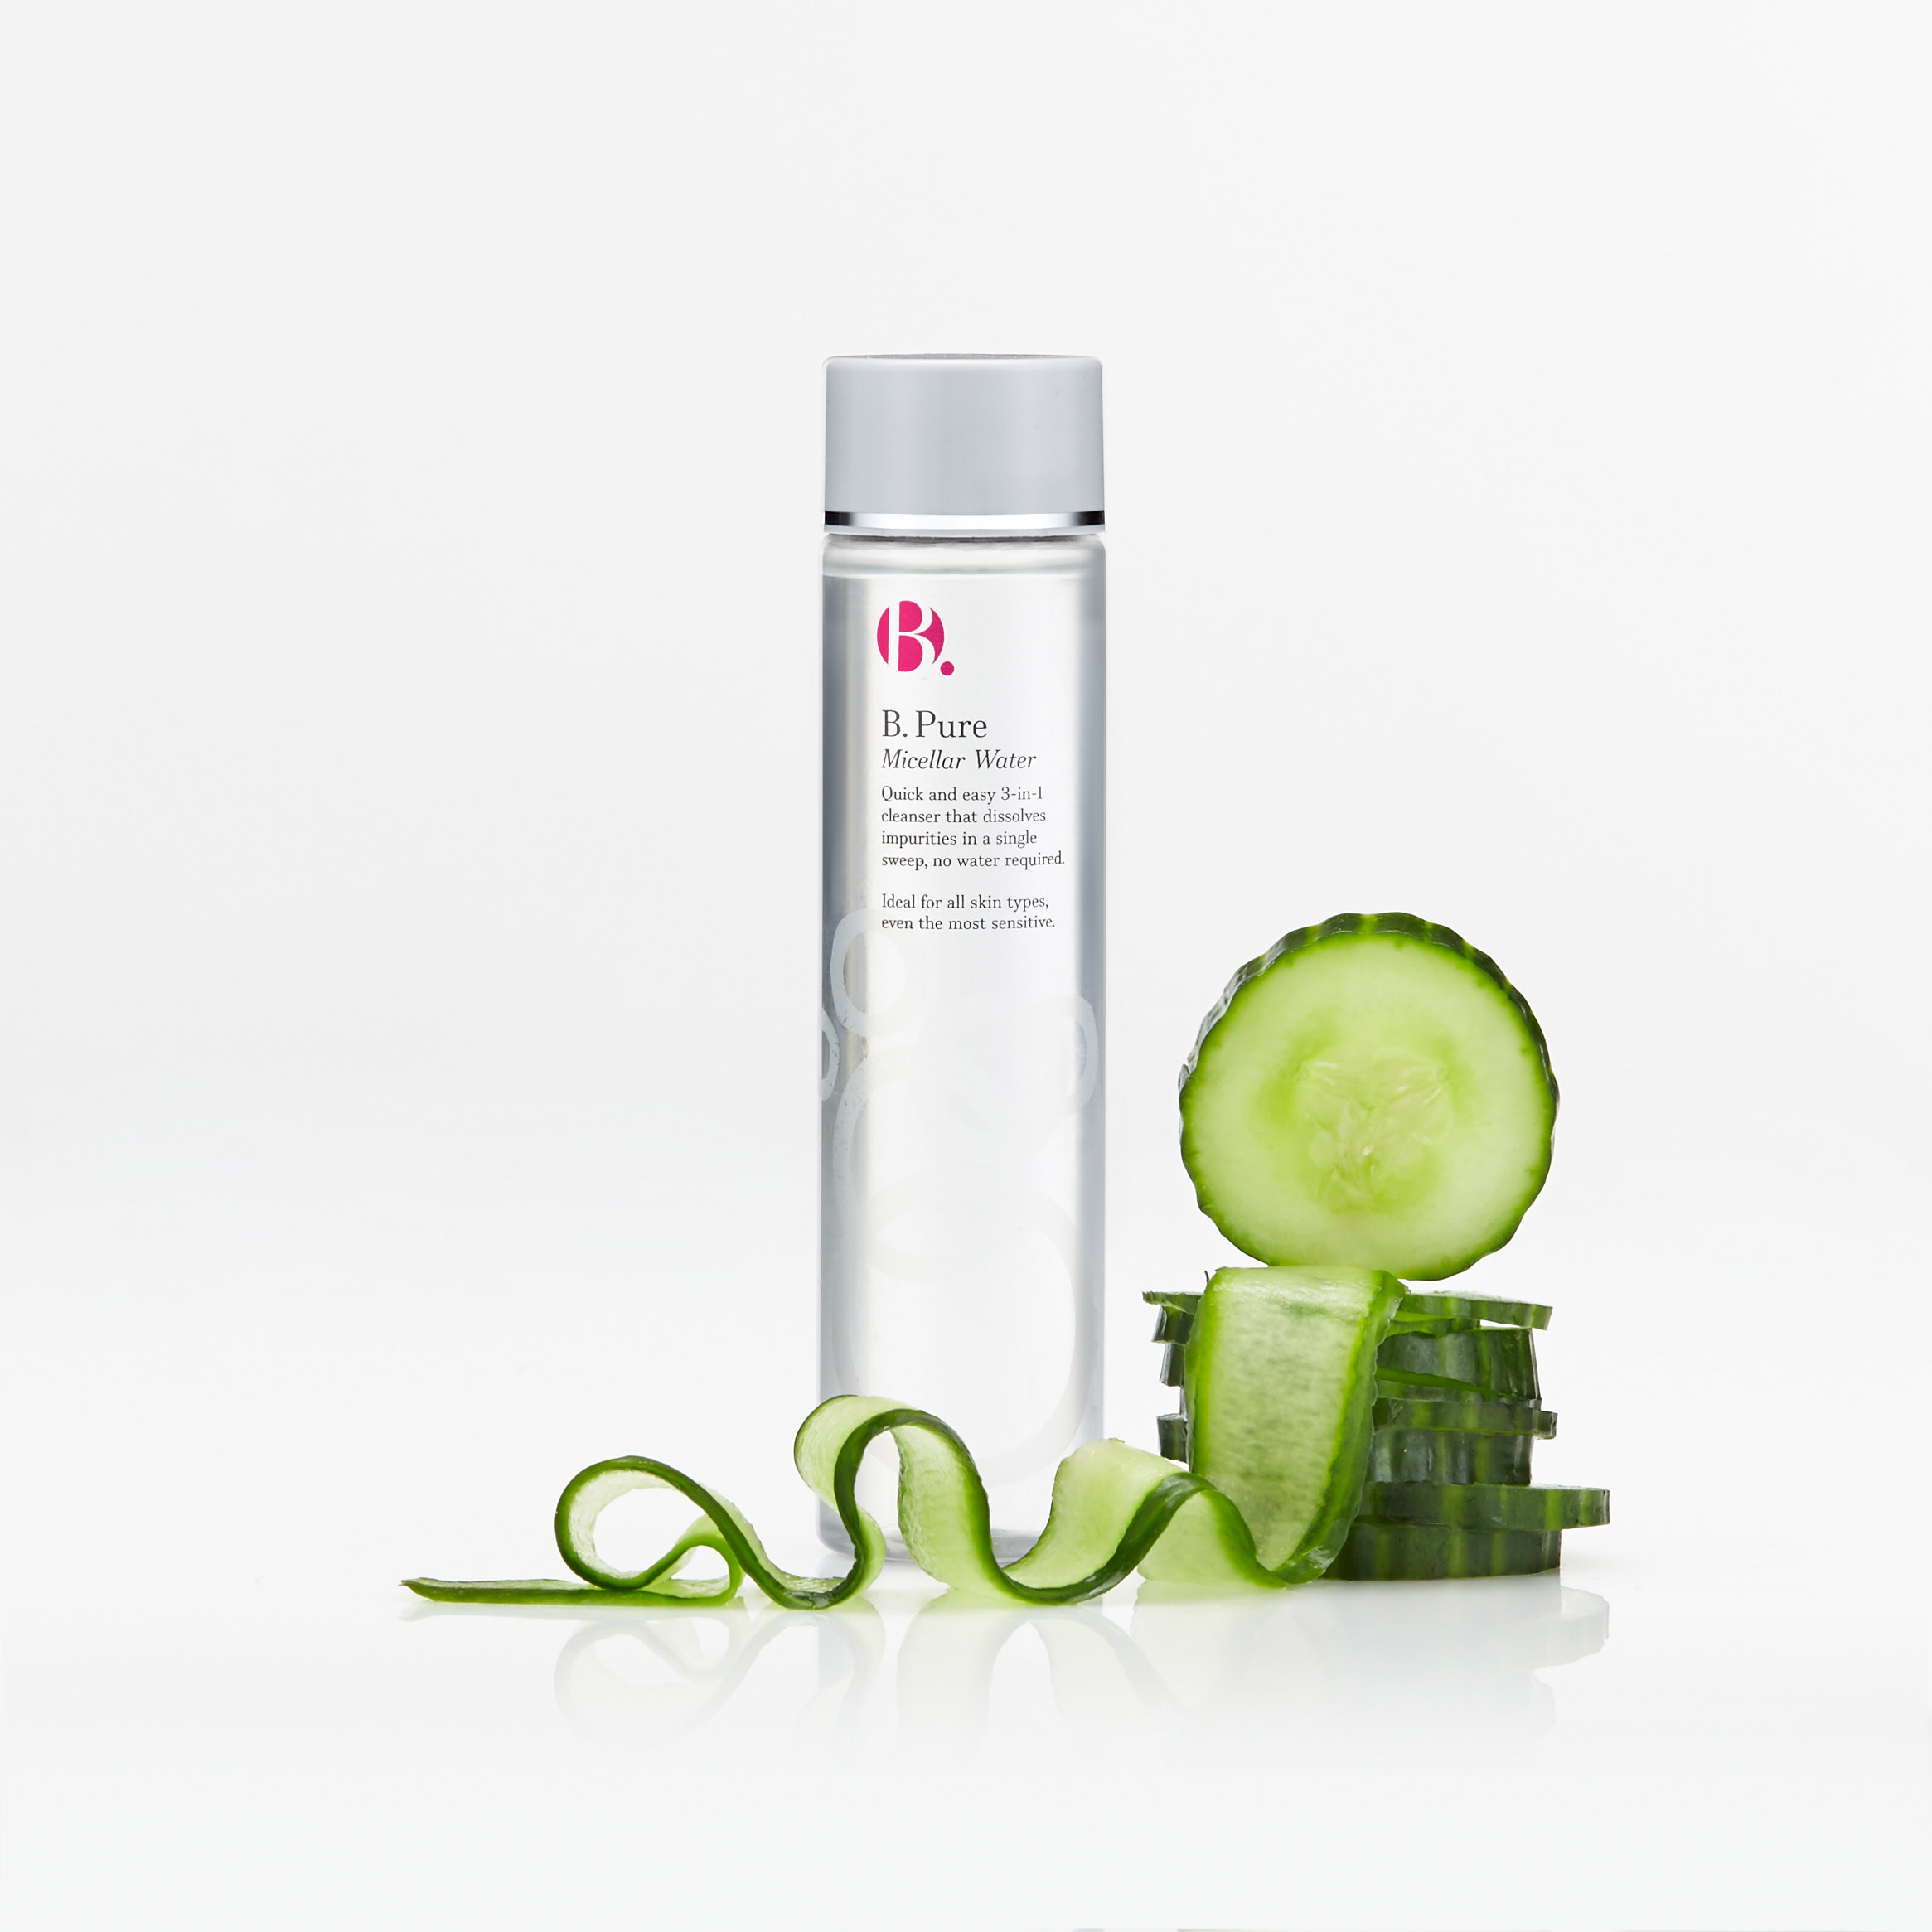 b-pure-micellar-water-54885-product-with-ingredients-548853.jpg